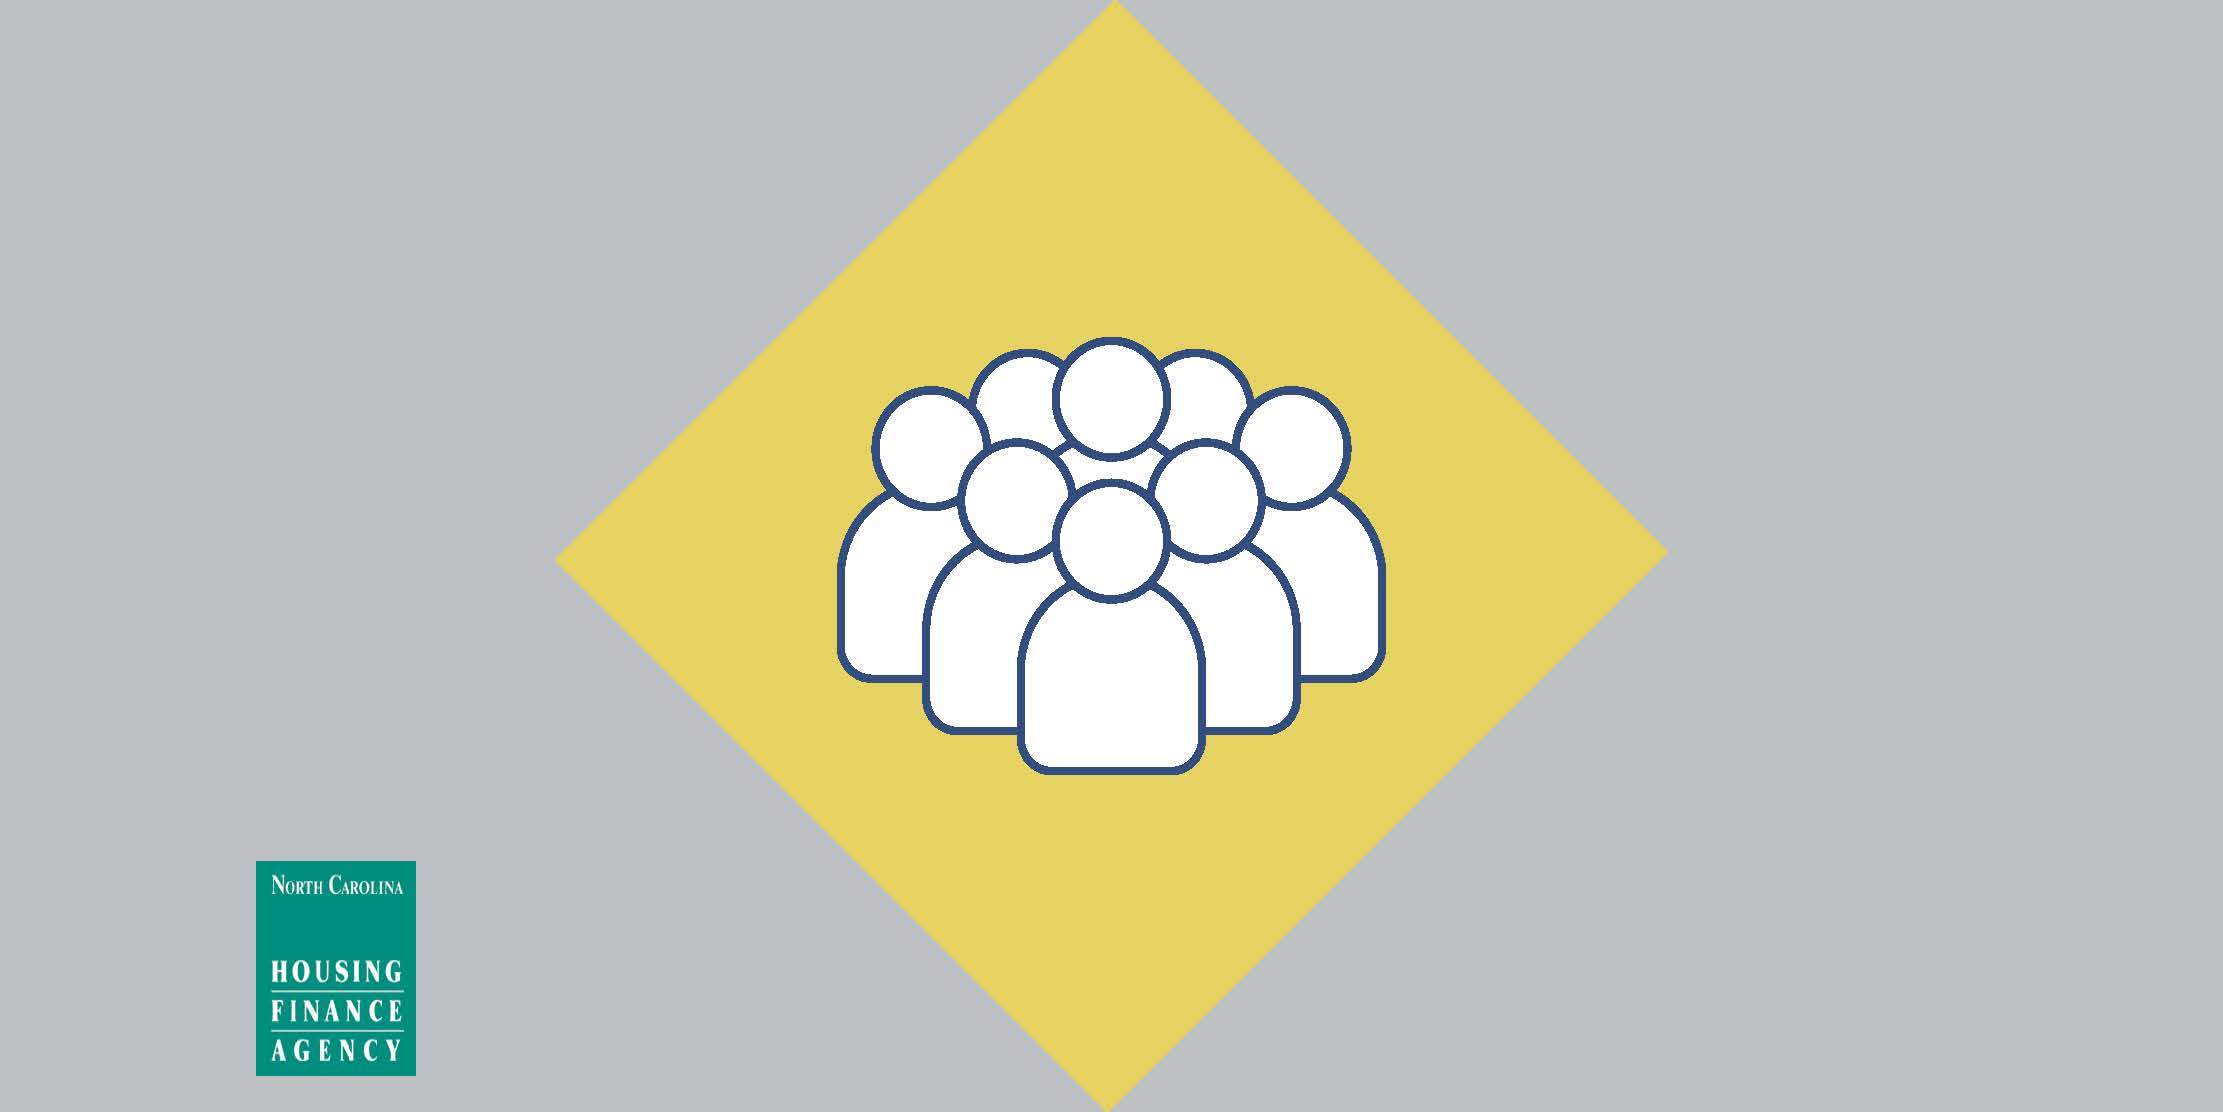 Gray and yellow graphic with outline of people in center